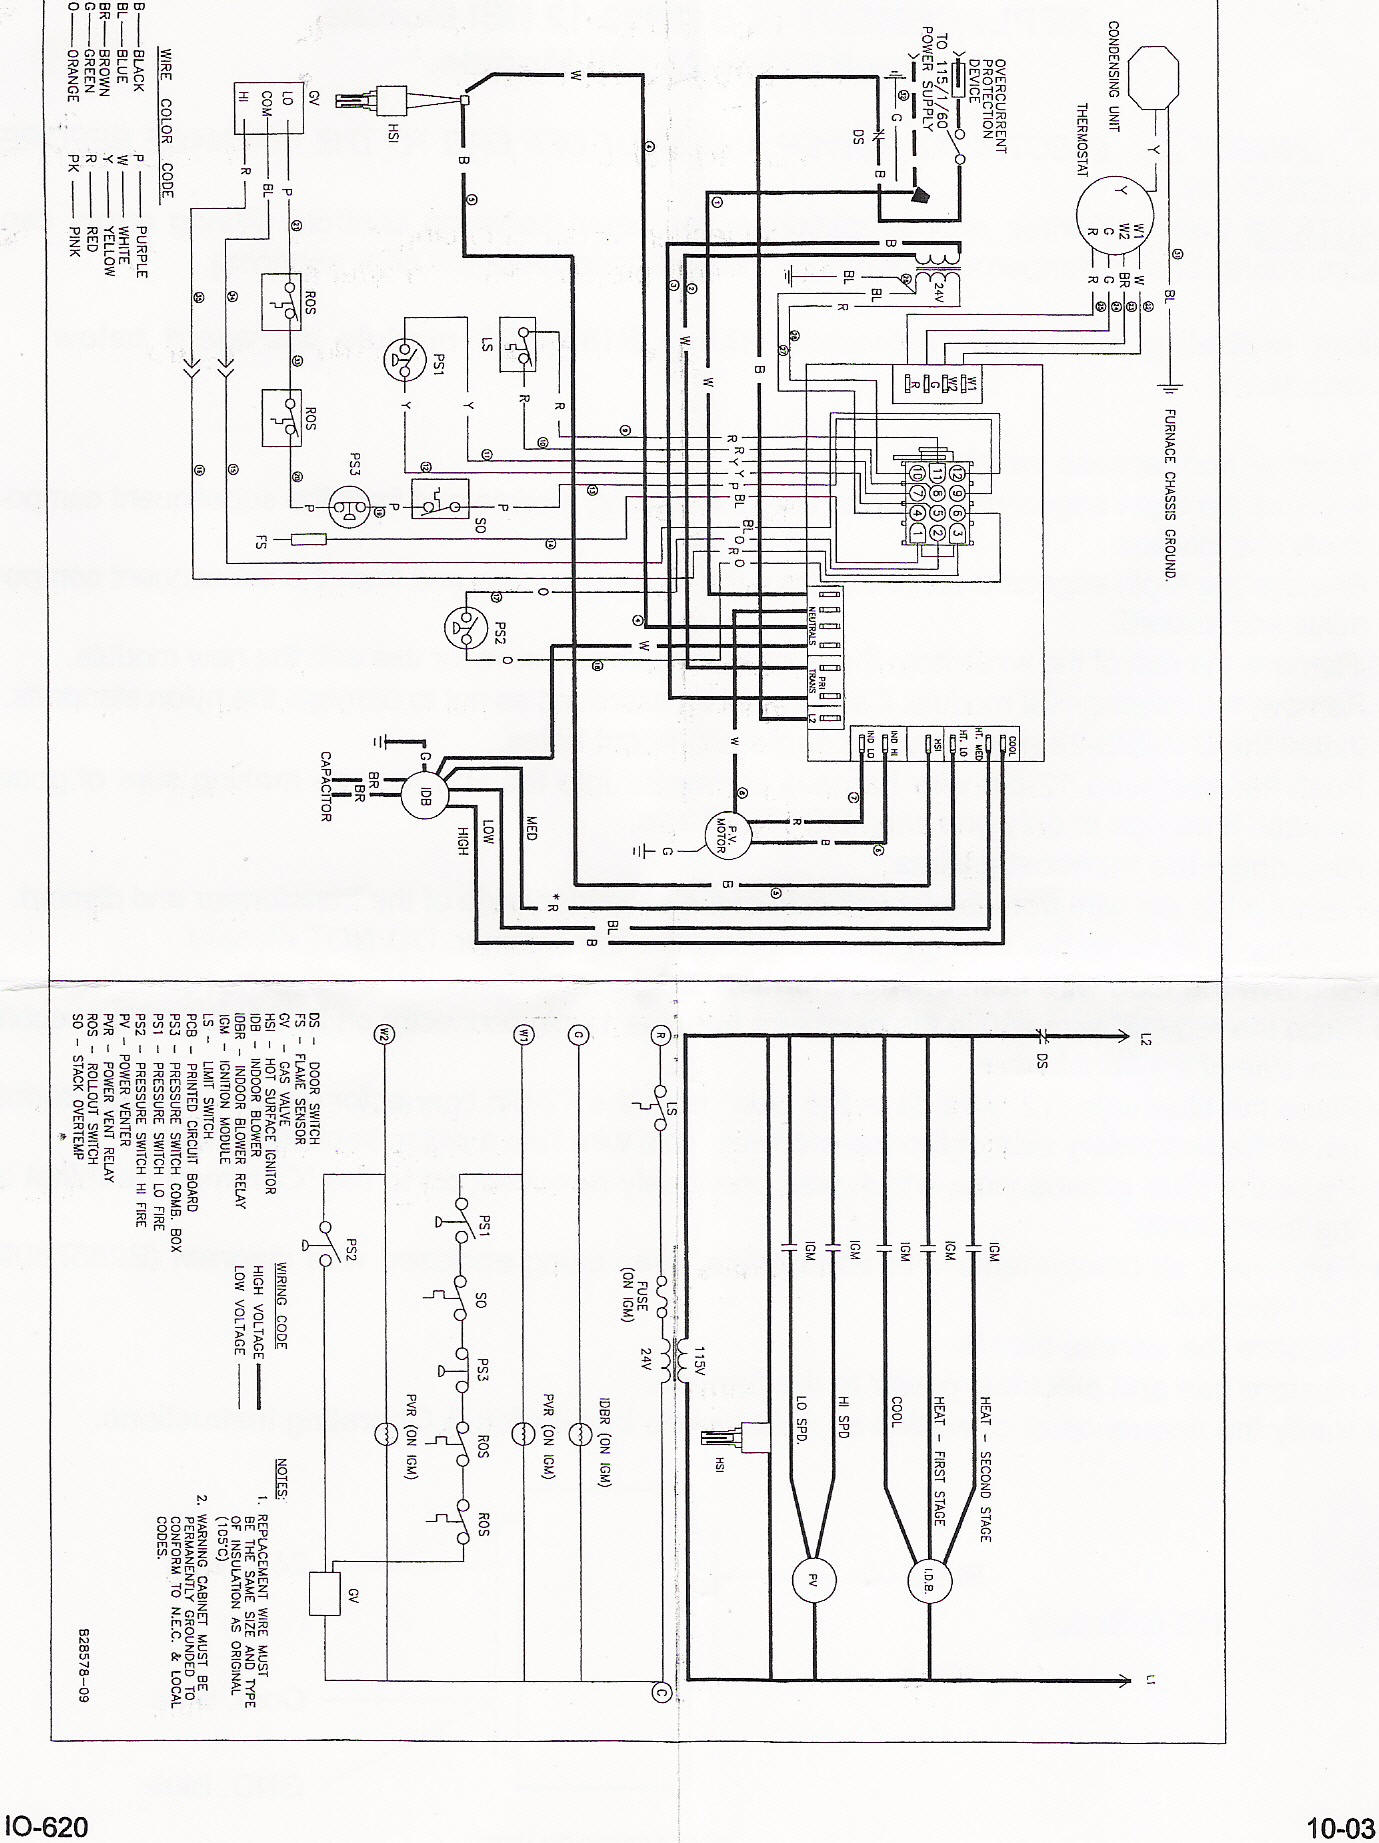 goodma2 instr goodman control board b18099 23 instructions goodman hvac wiring diagram at cos-gaming.co